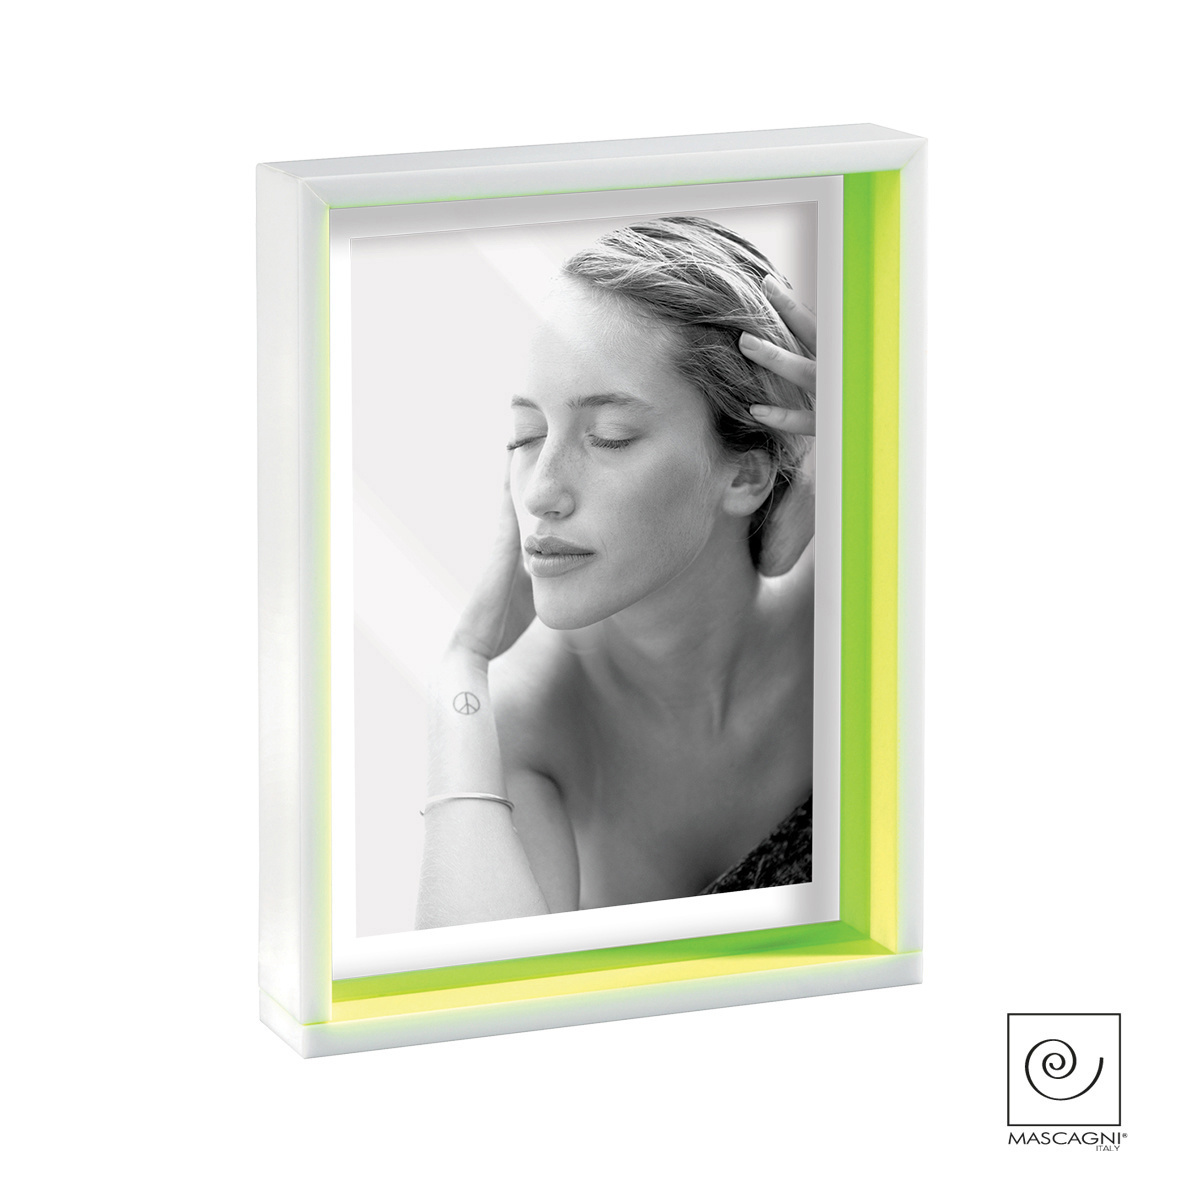 Art Mascagni A662 PHOTO FRAME 13X18 - COL. GREEN